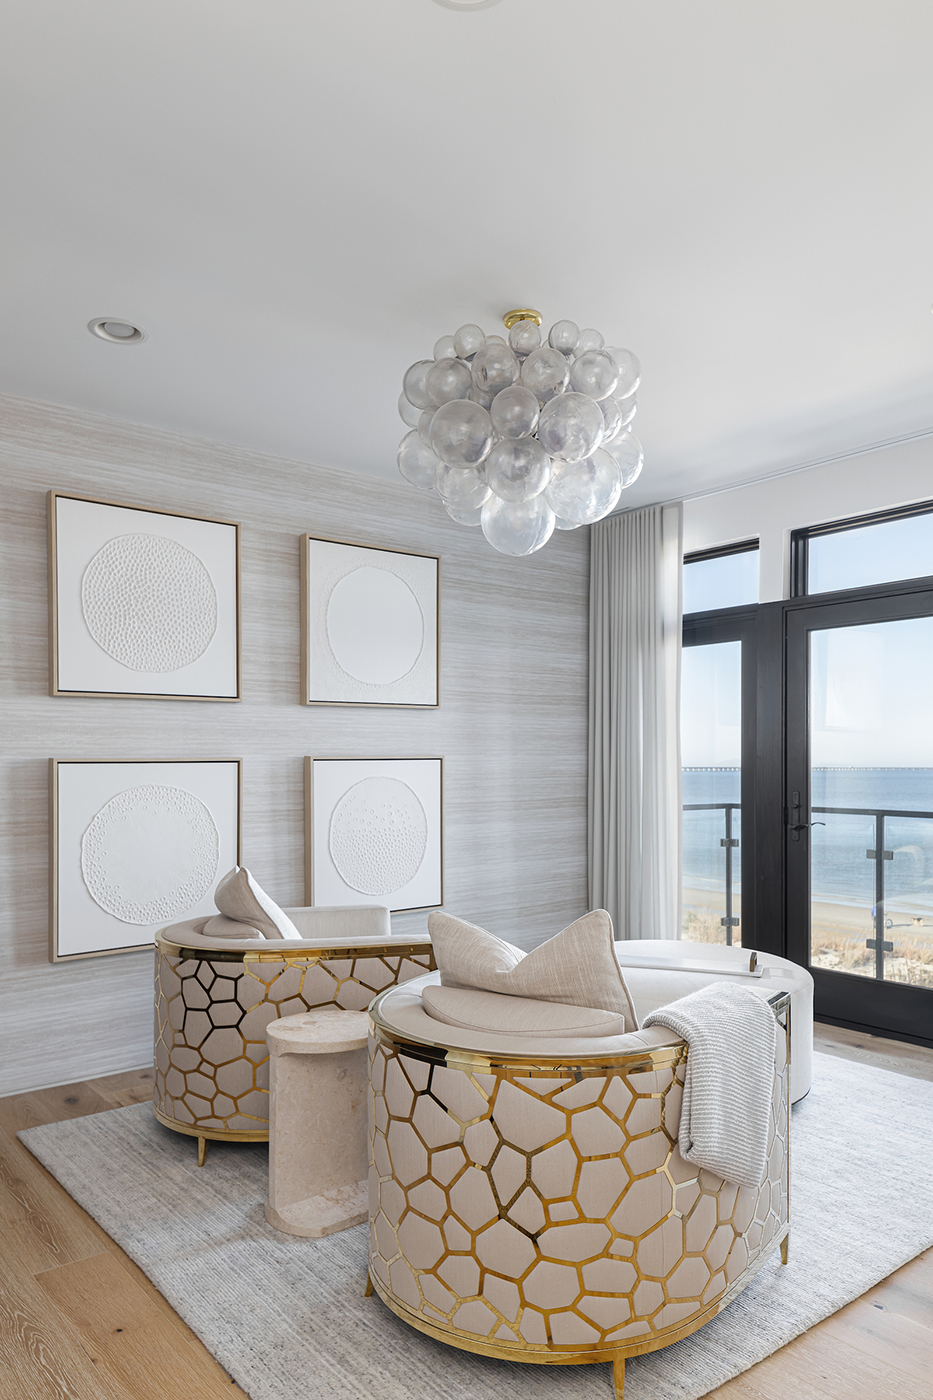 Bedroom chairs facing oceanside view in Virginia Beach home designed by Kenneth Byrd shot by Quentin Penn Hollar for Virginia Living Magazine